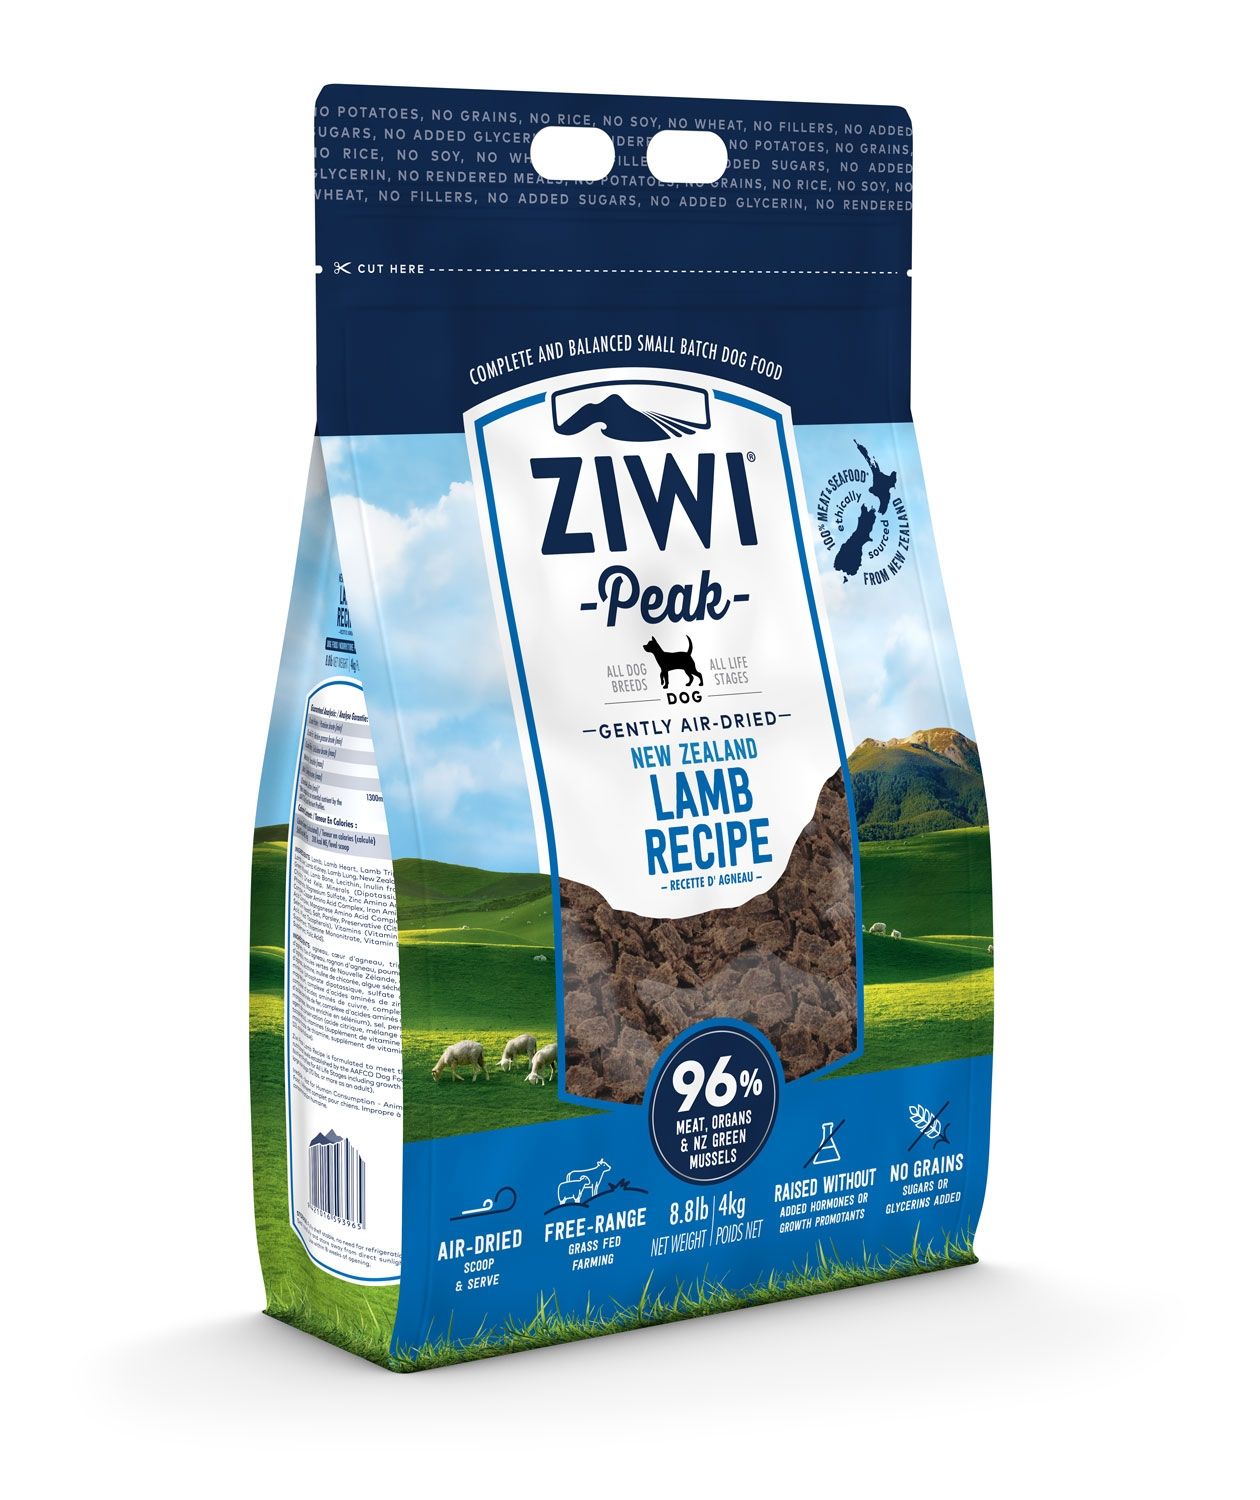 thumbnail 3 - Ziwi Peak Air-Dried Lamb Food For Dogs single protein allergies real meat